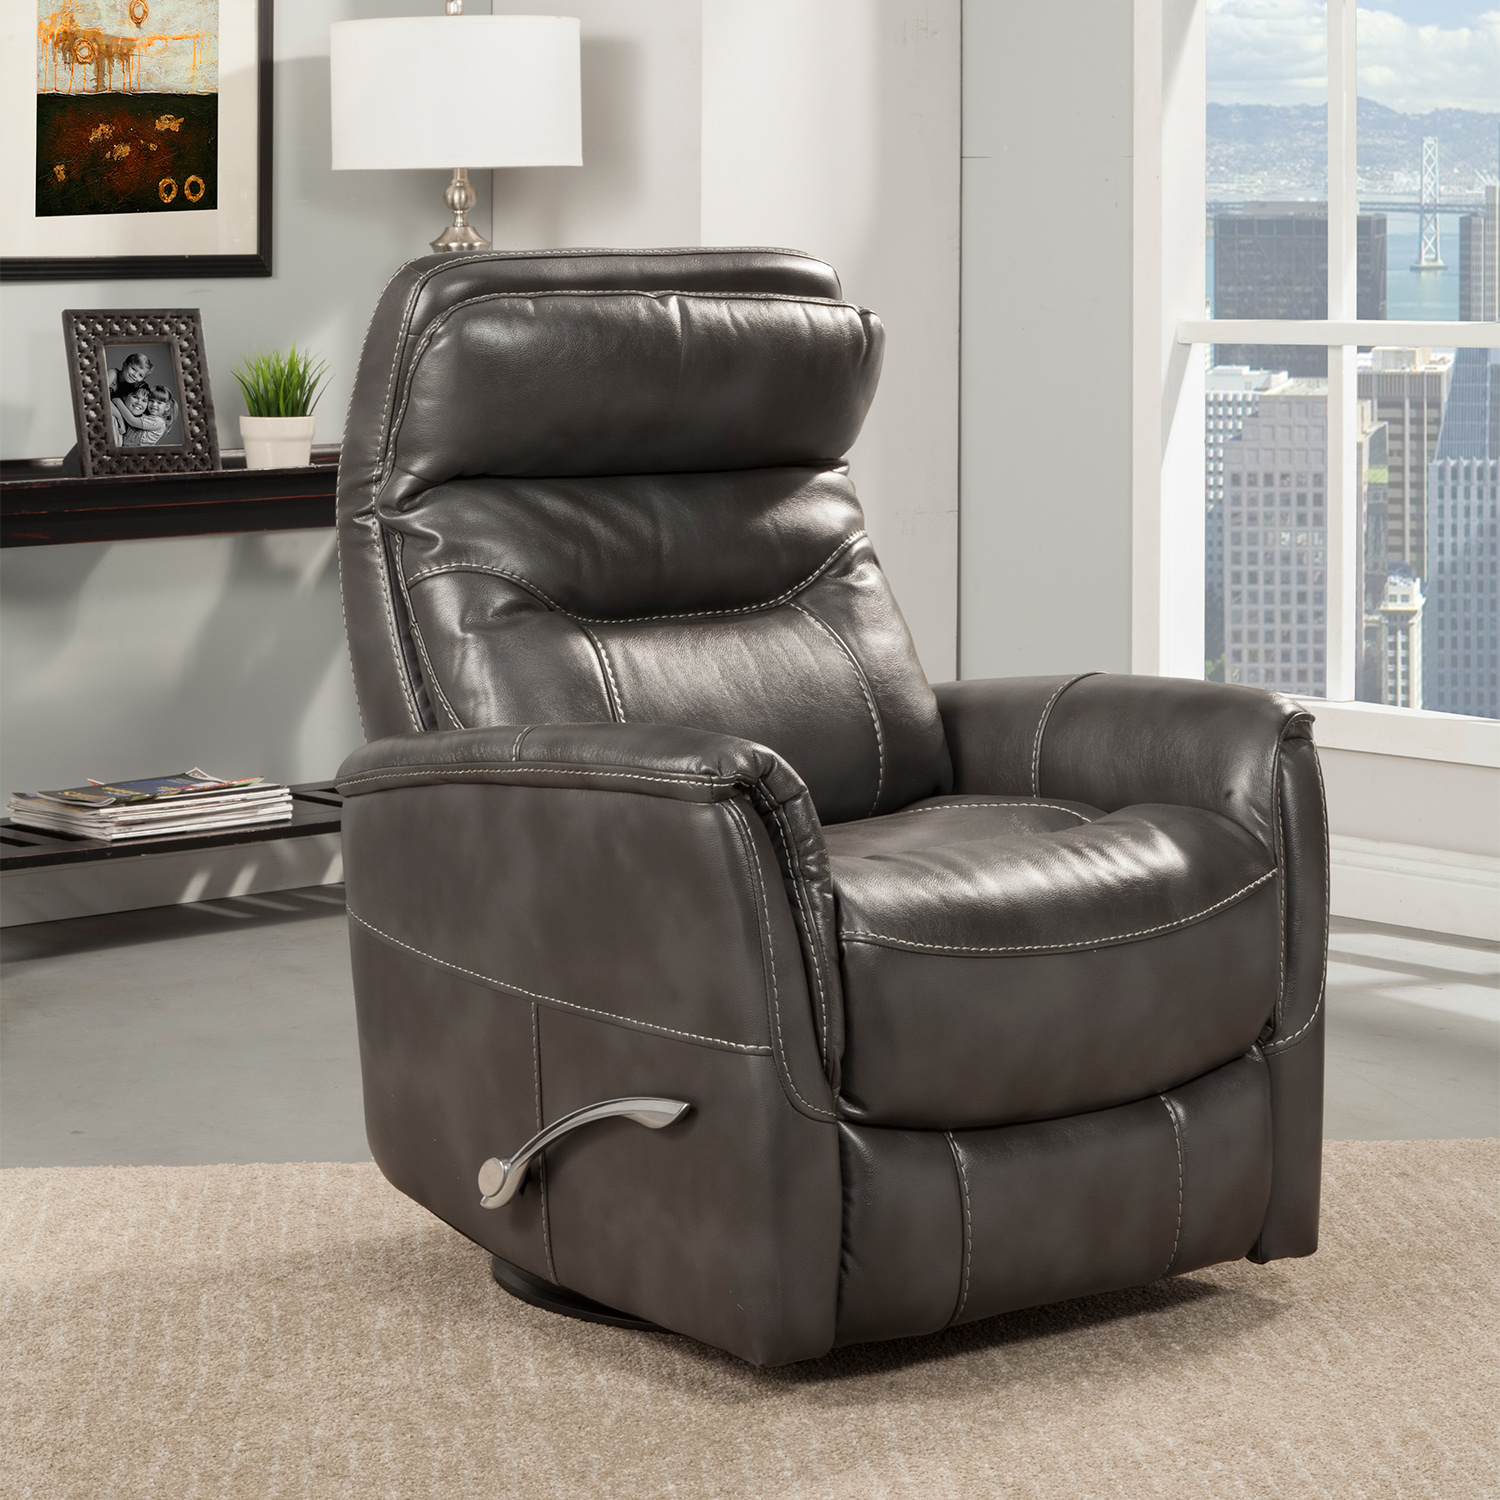 Gemini Glider Swivel Recliner in Flint Leatherette & Parker House MGEM#812GS-FLI Gemini Glider Swivel Recliner in Flint ... islam-shia.org